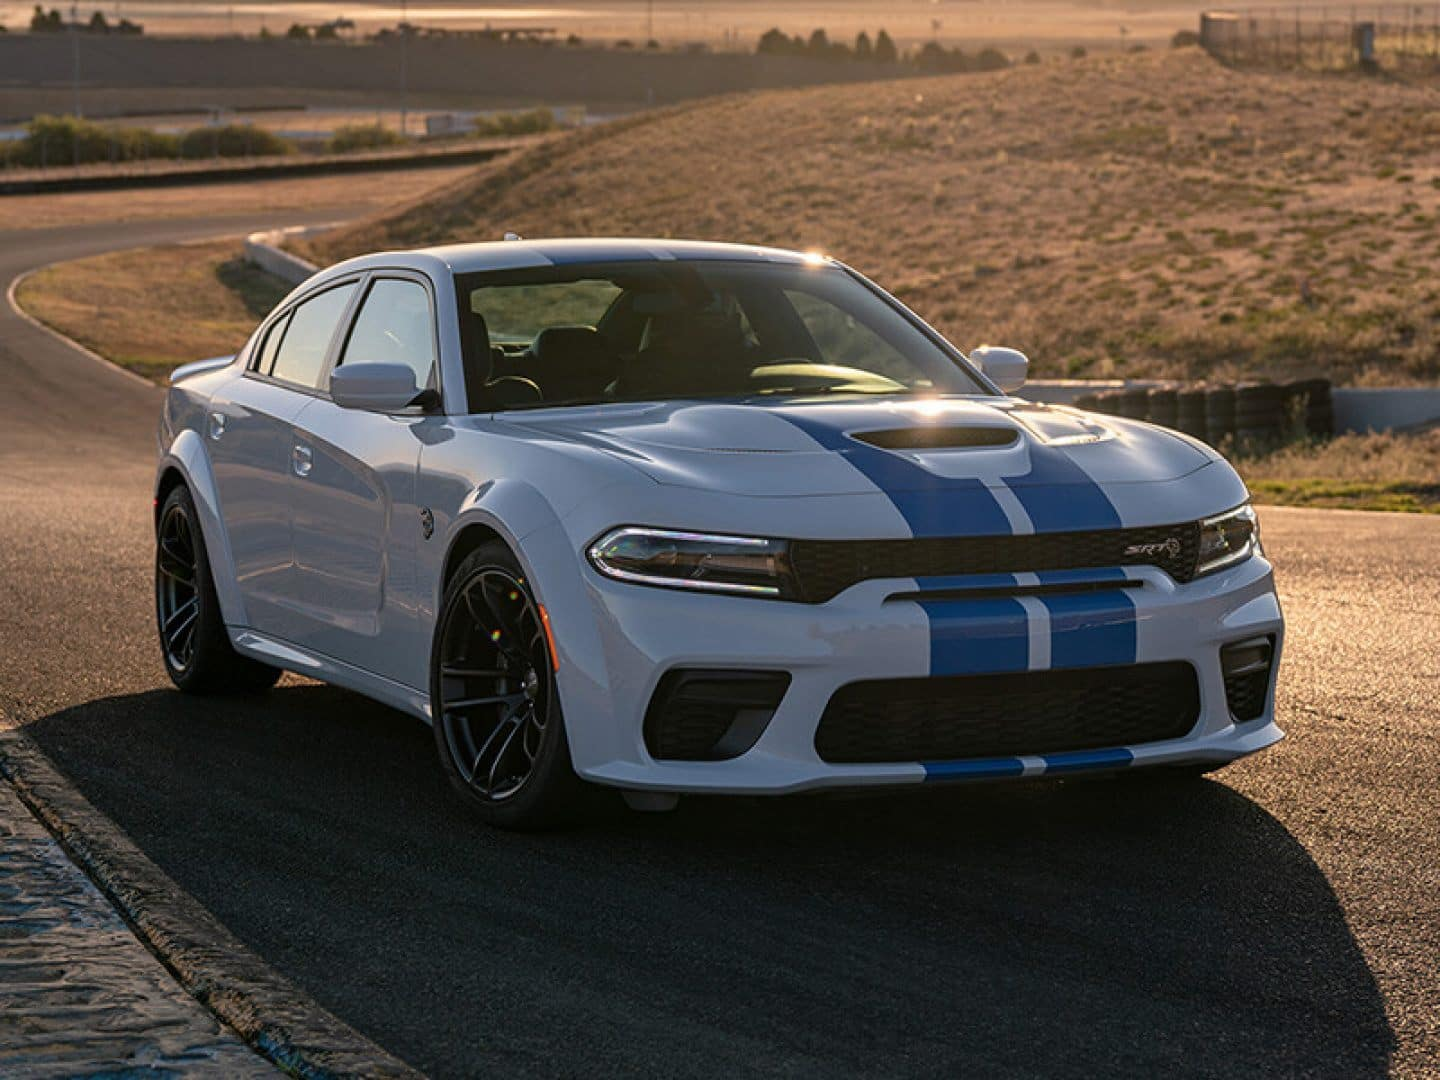 The 2021 Dodge Charger Srt Hellcat Comes Out From The Shadows